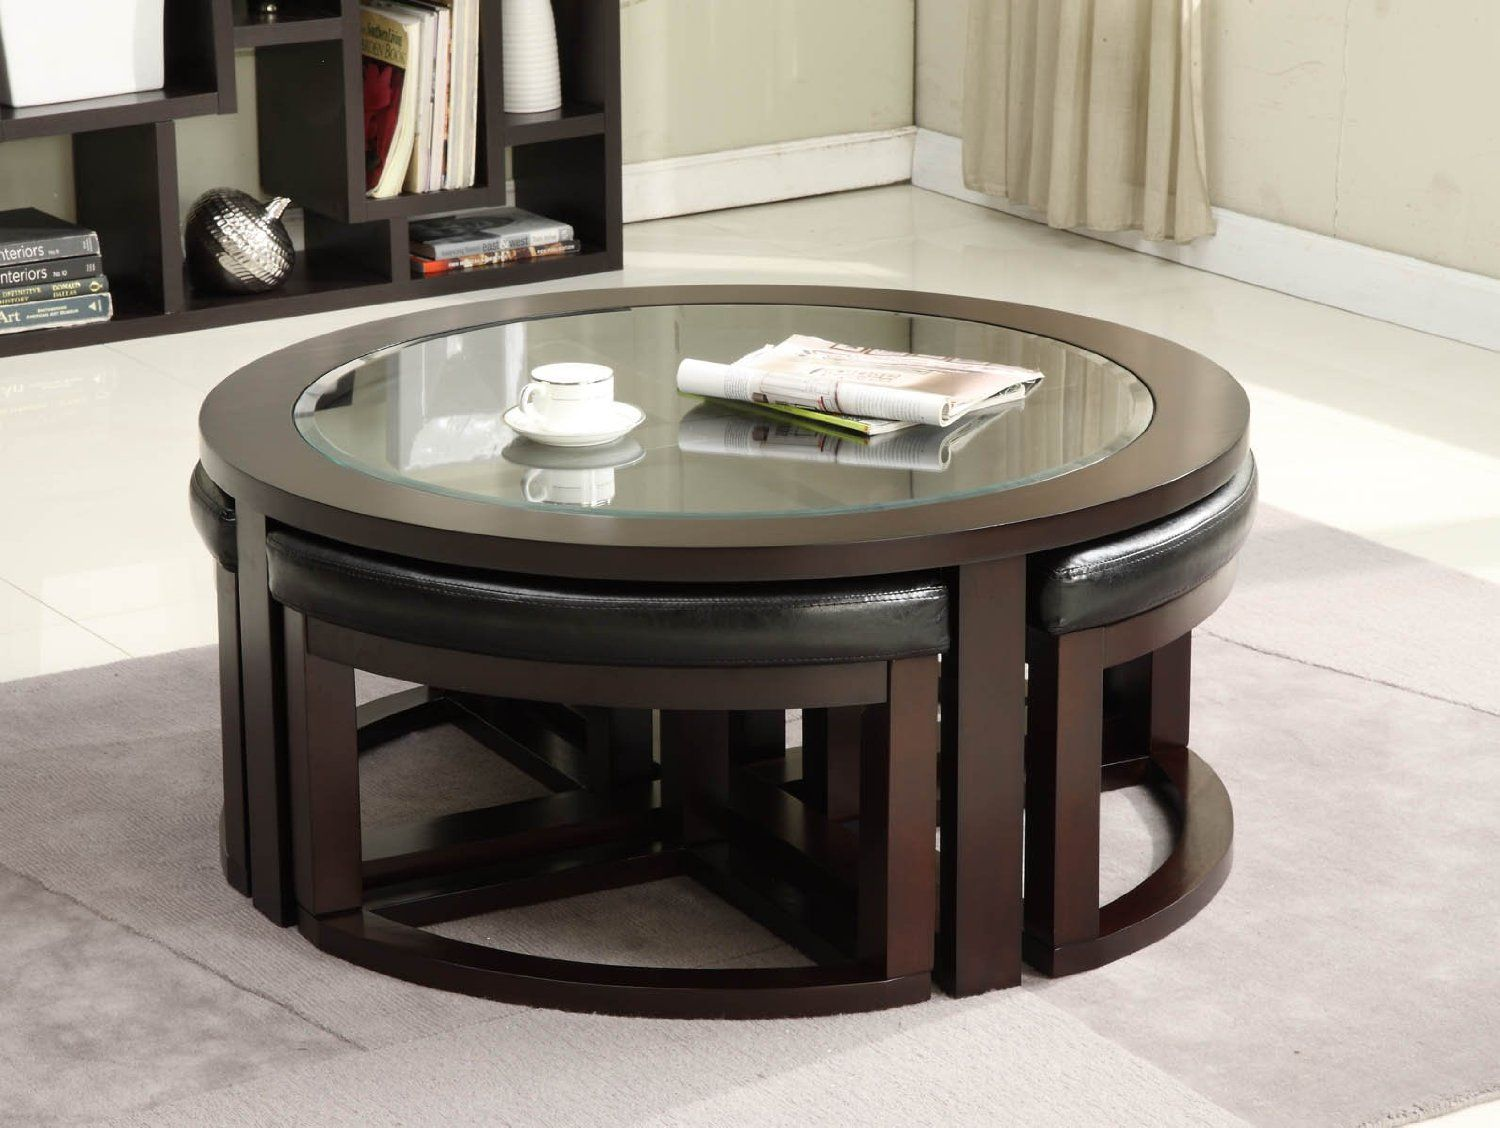 Round coffee table with 4 wedge stools